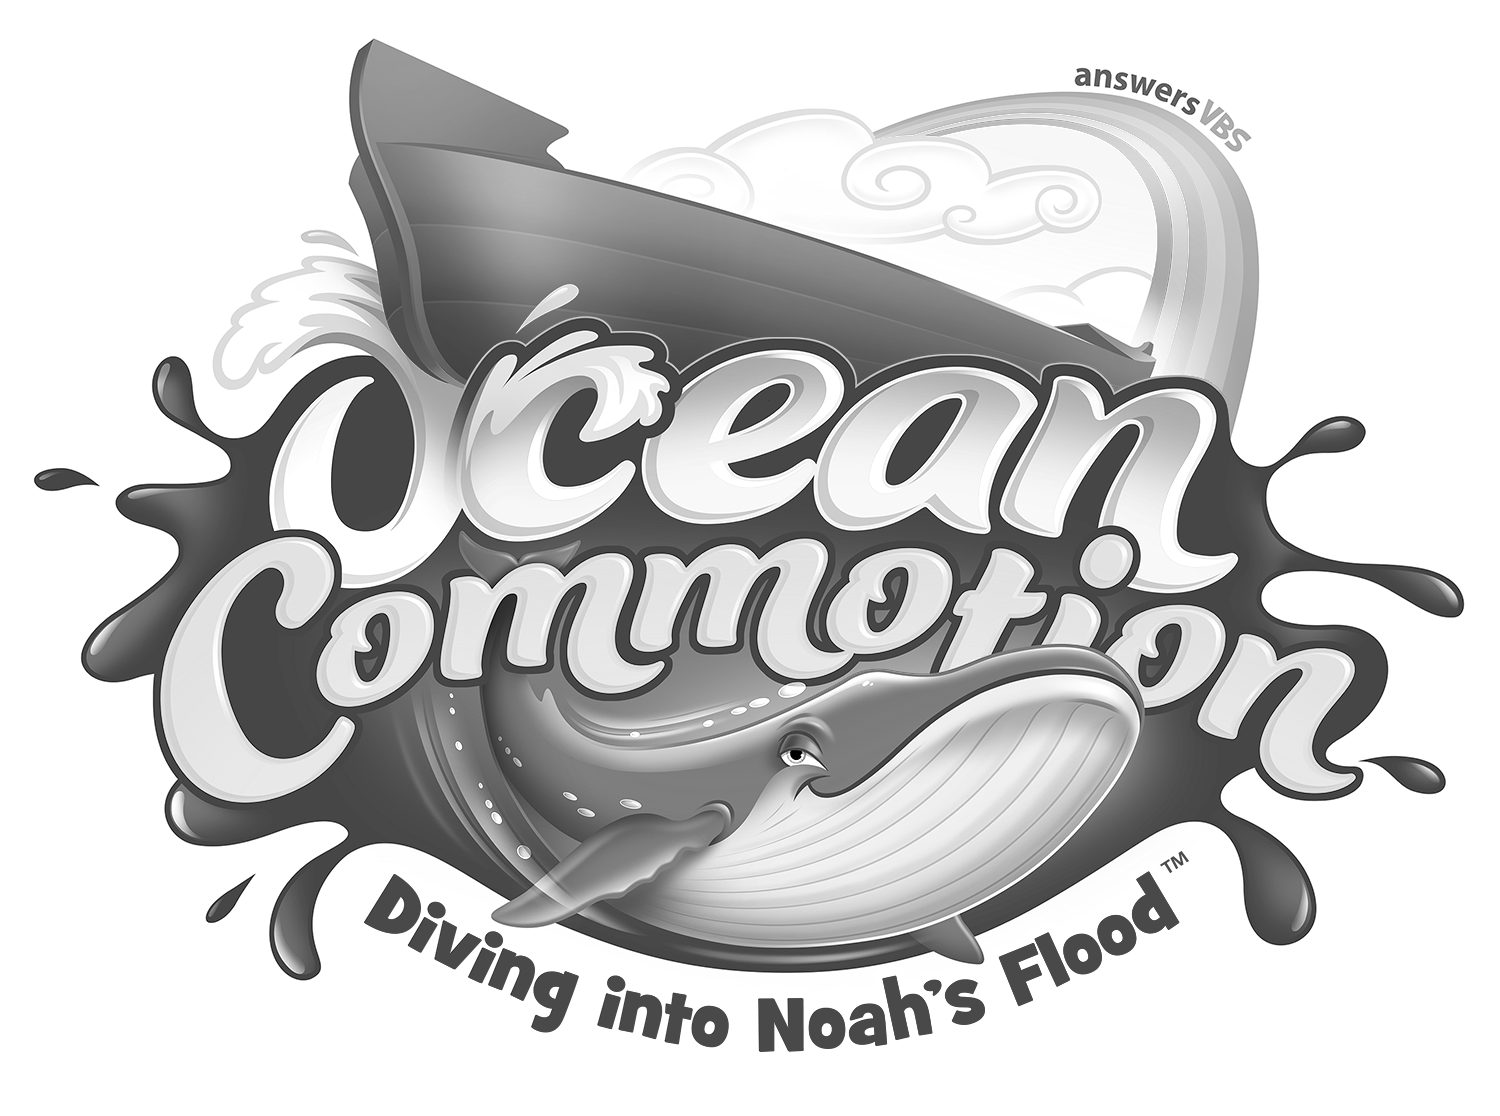 Clipart ocean logo. Commotion resources answers vbs